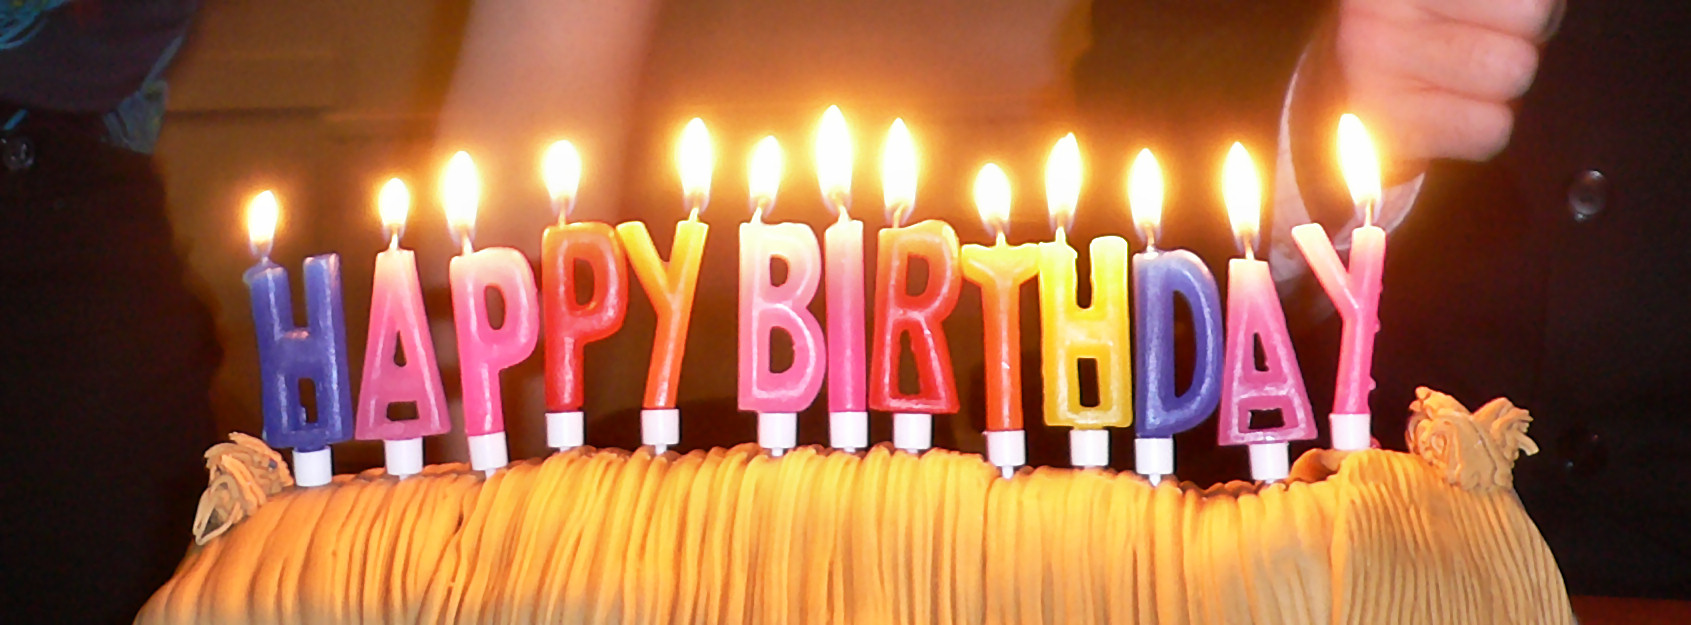 https://upload.wikimedia.org/wikipedia/commons/d/dd/Birthday_candles.jpg